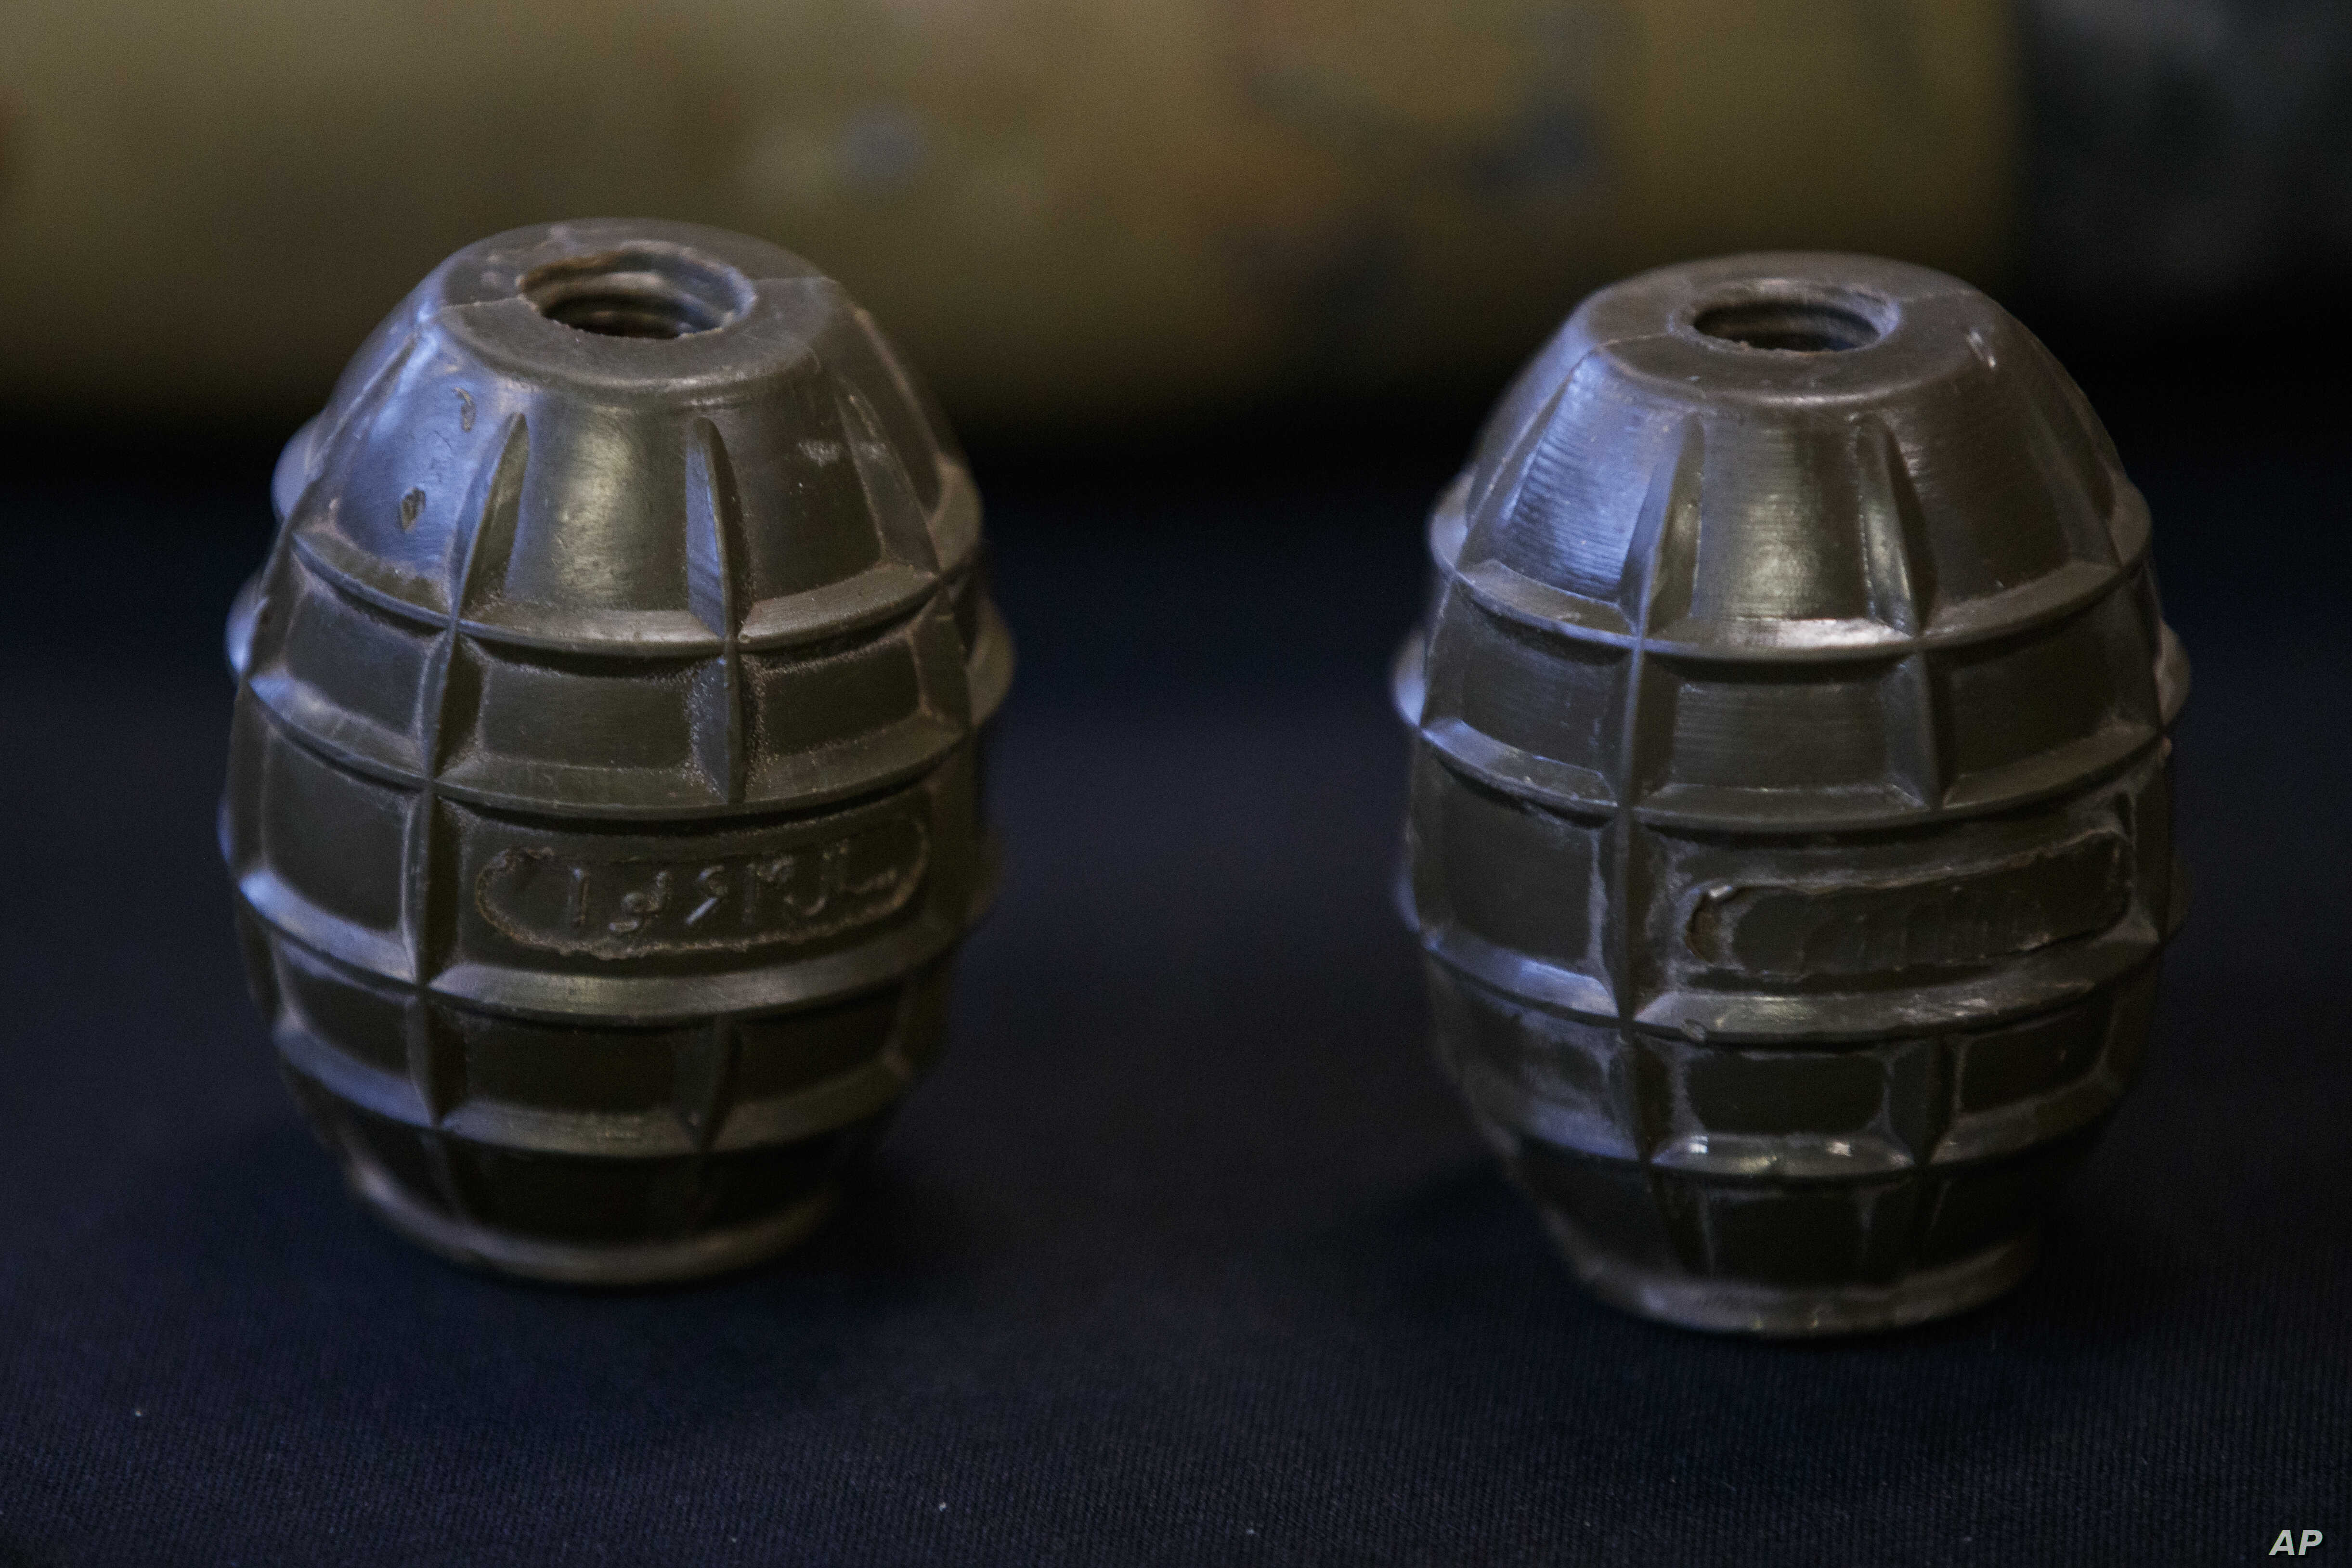 Hand grenades are on display at the Iranian Materiel Display (IMD) at Joint Base Anacostia-Bolling, in Washington, Nov. 29, 2018. The Trump administration accused Iran of stepping up violations of a U.N. ban on arms exports by sending rockets and ot...